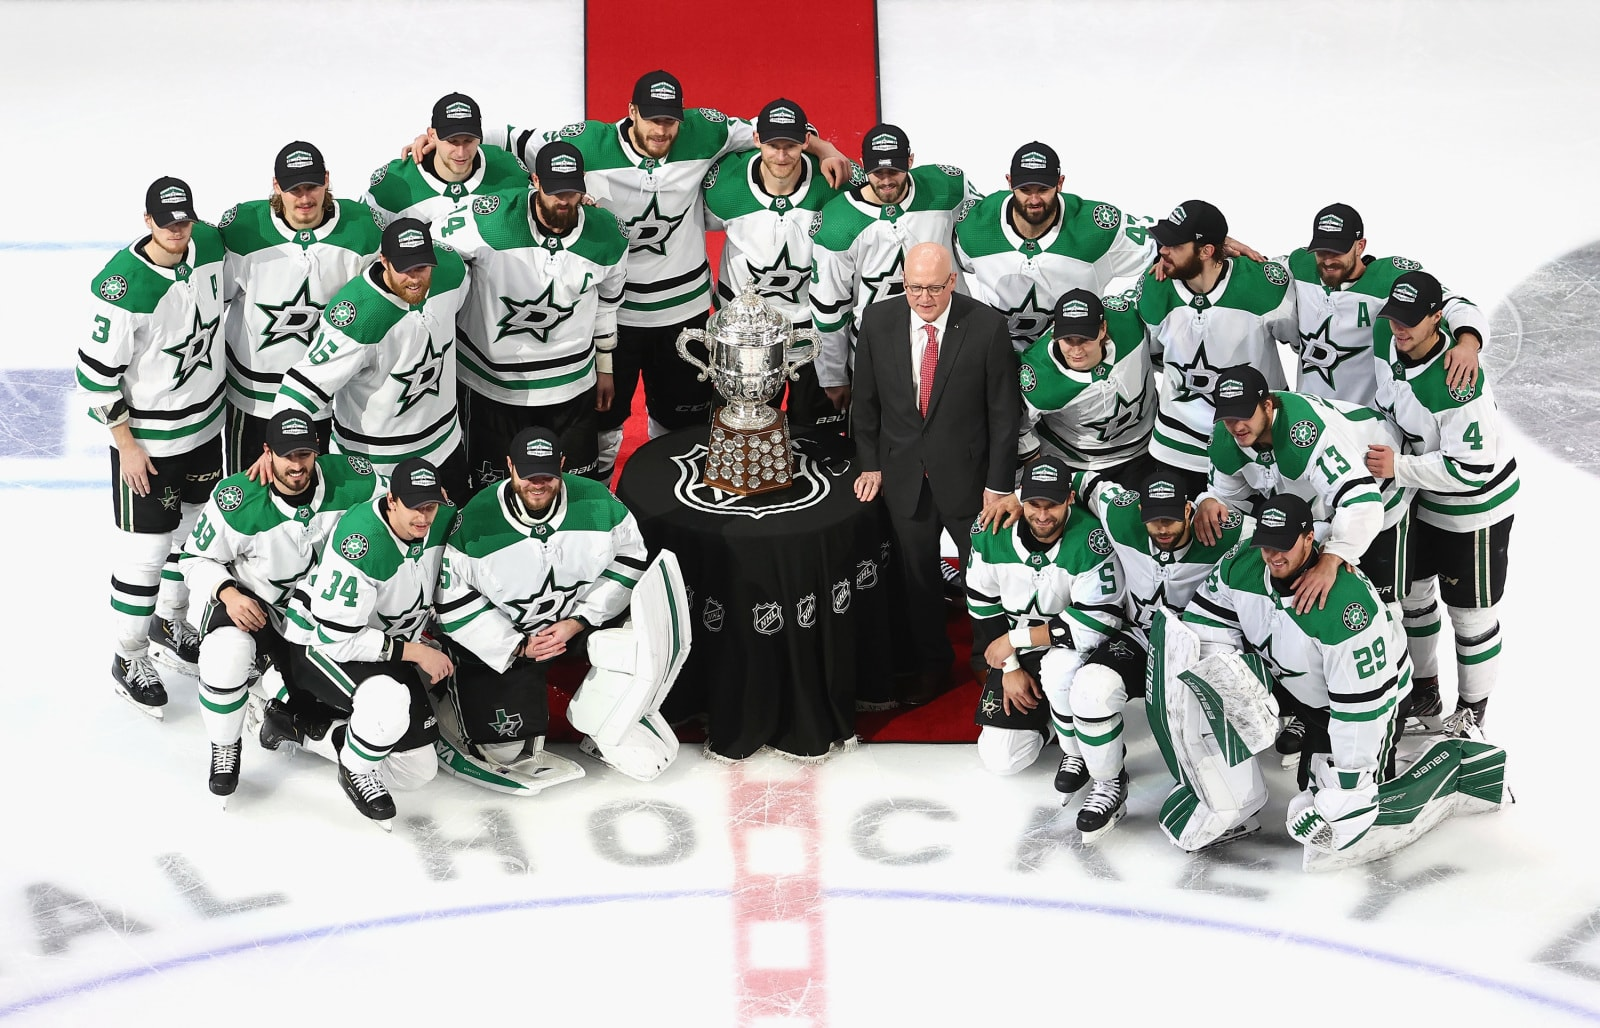 The Dallas Stars pose for a team photo with Bill Daly, the deputy commissioner and chief legal officer of the National Hockey League (NHL) and the Clarence S. Campbell Bowl after winning the Western Conference Championship